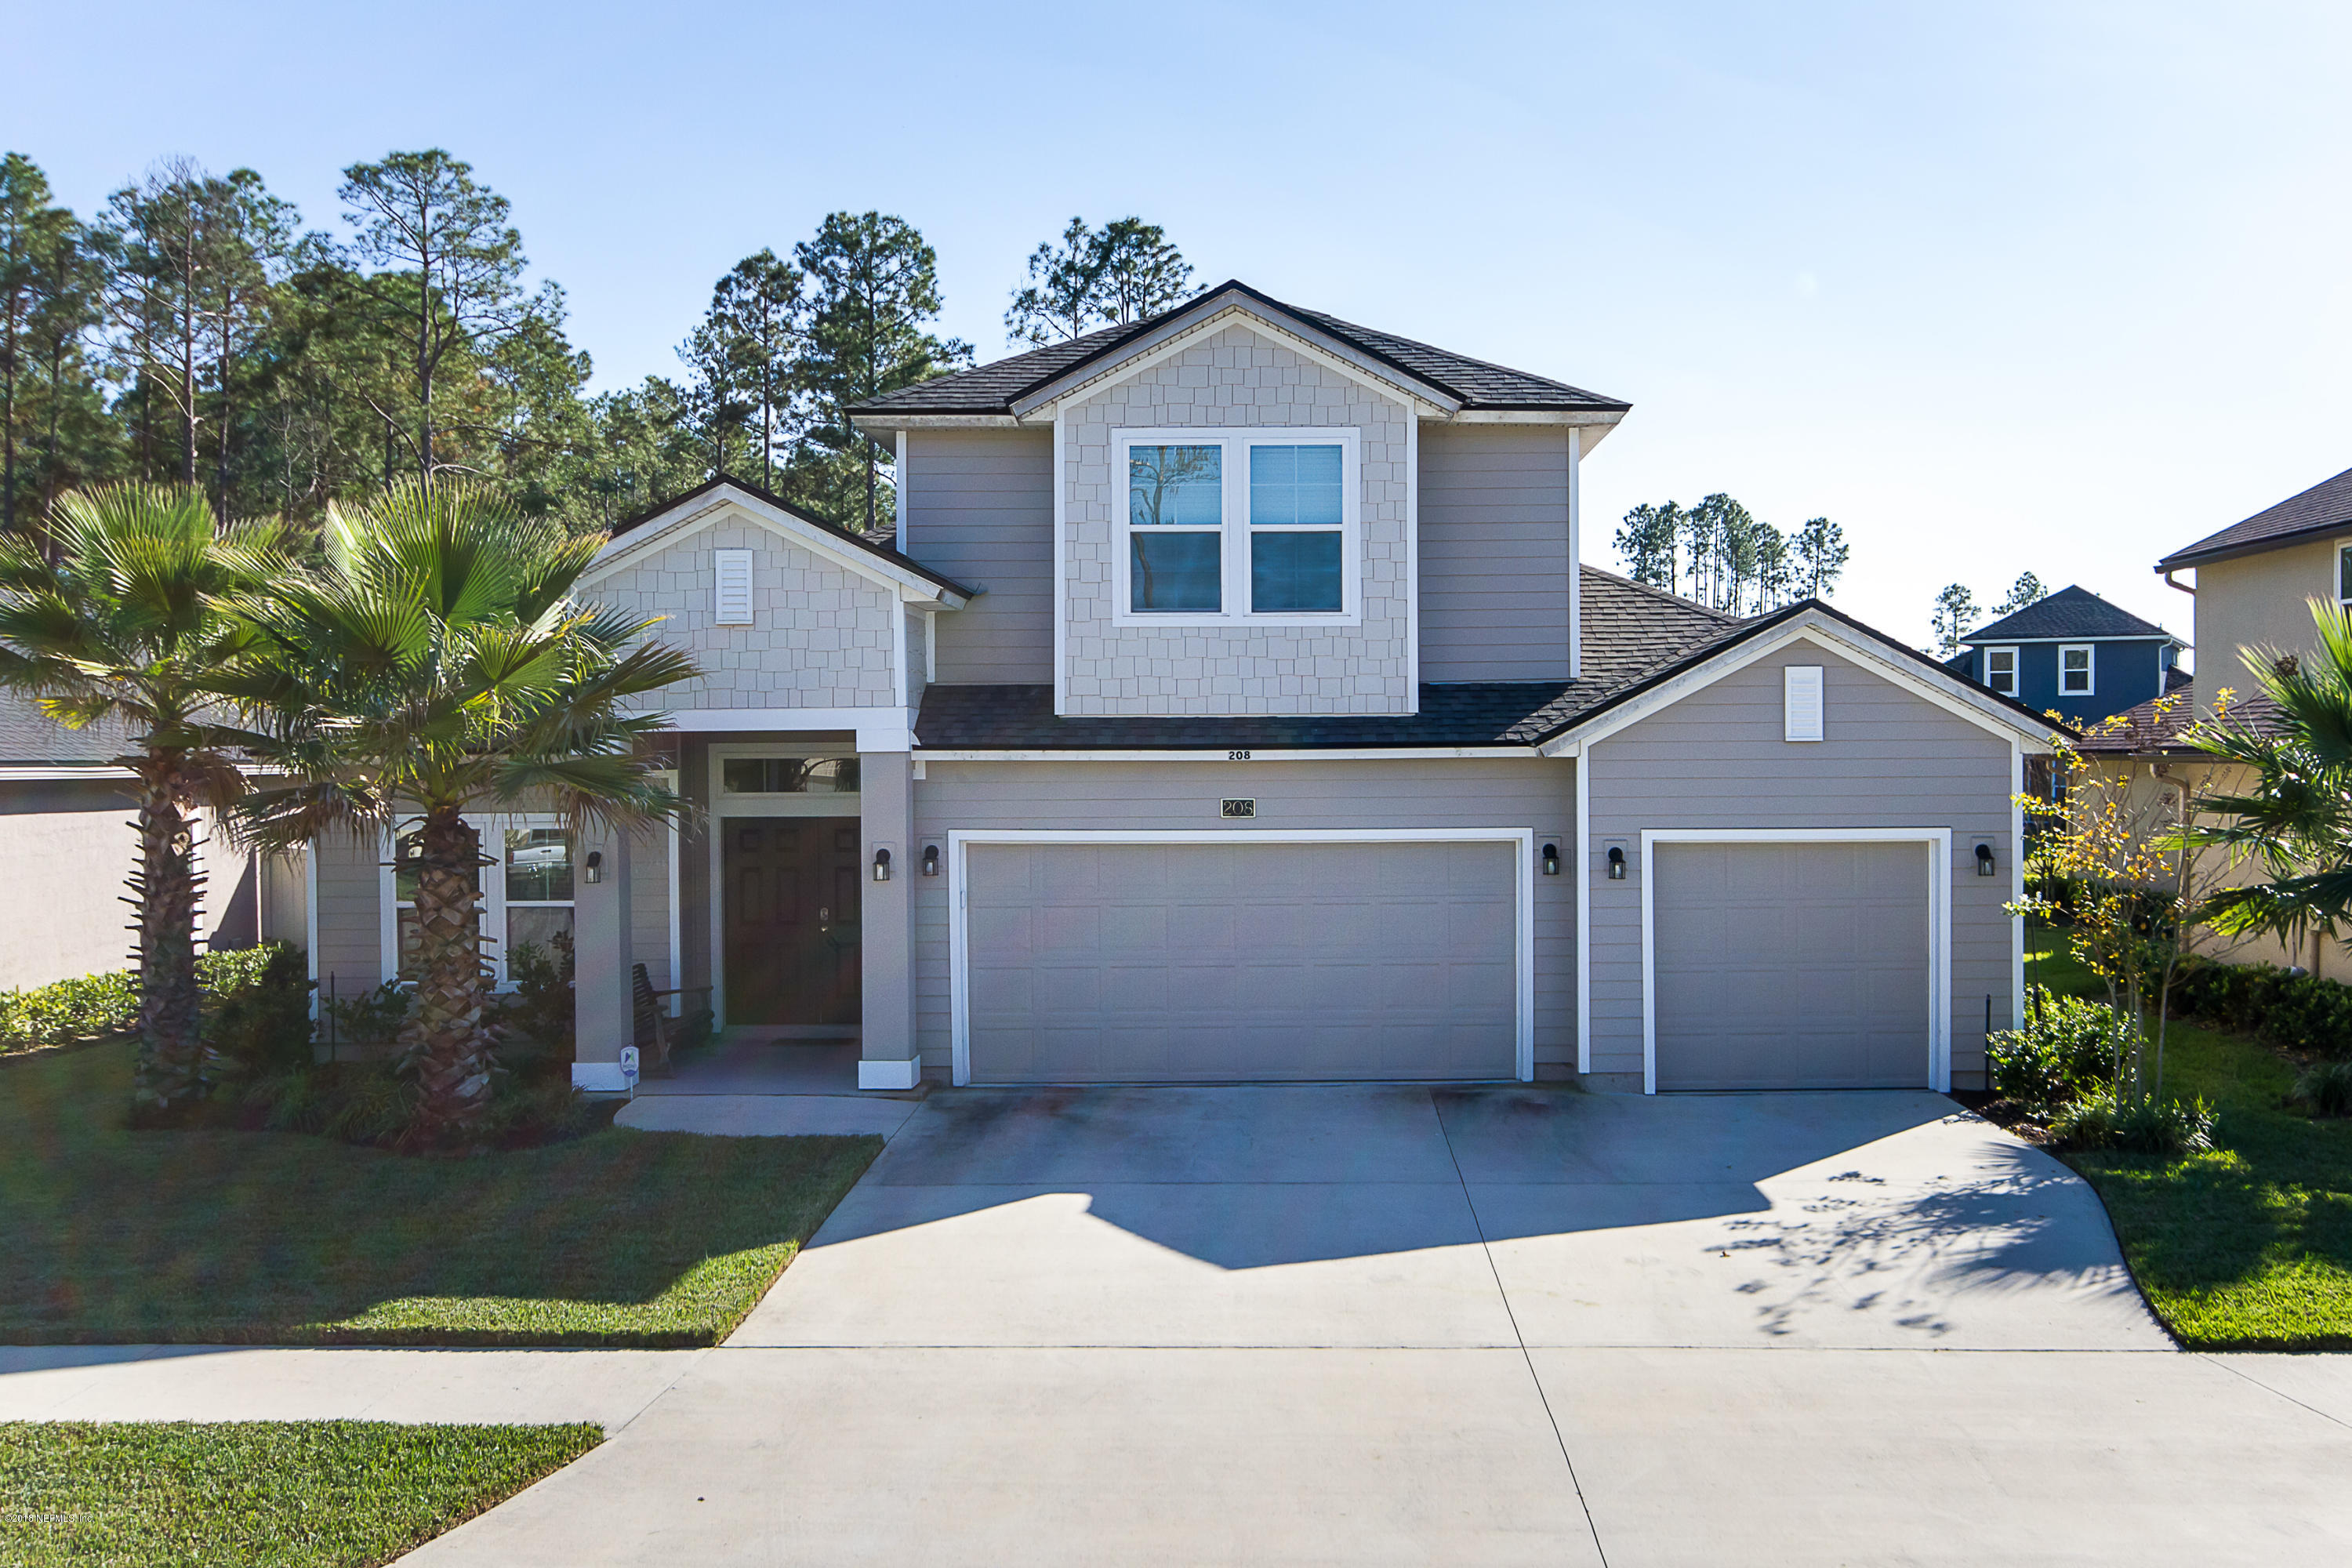 208 COCONUT PALM, PONTE VEDRA, FLORIDA 32081, 4 Bedrooms Bedrooms, ,4 BathroomsBathrooms,Residential - single family,For sale,COCONUT PALM,969848